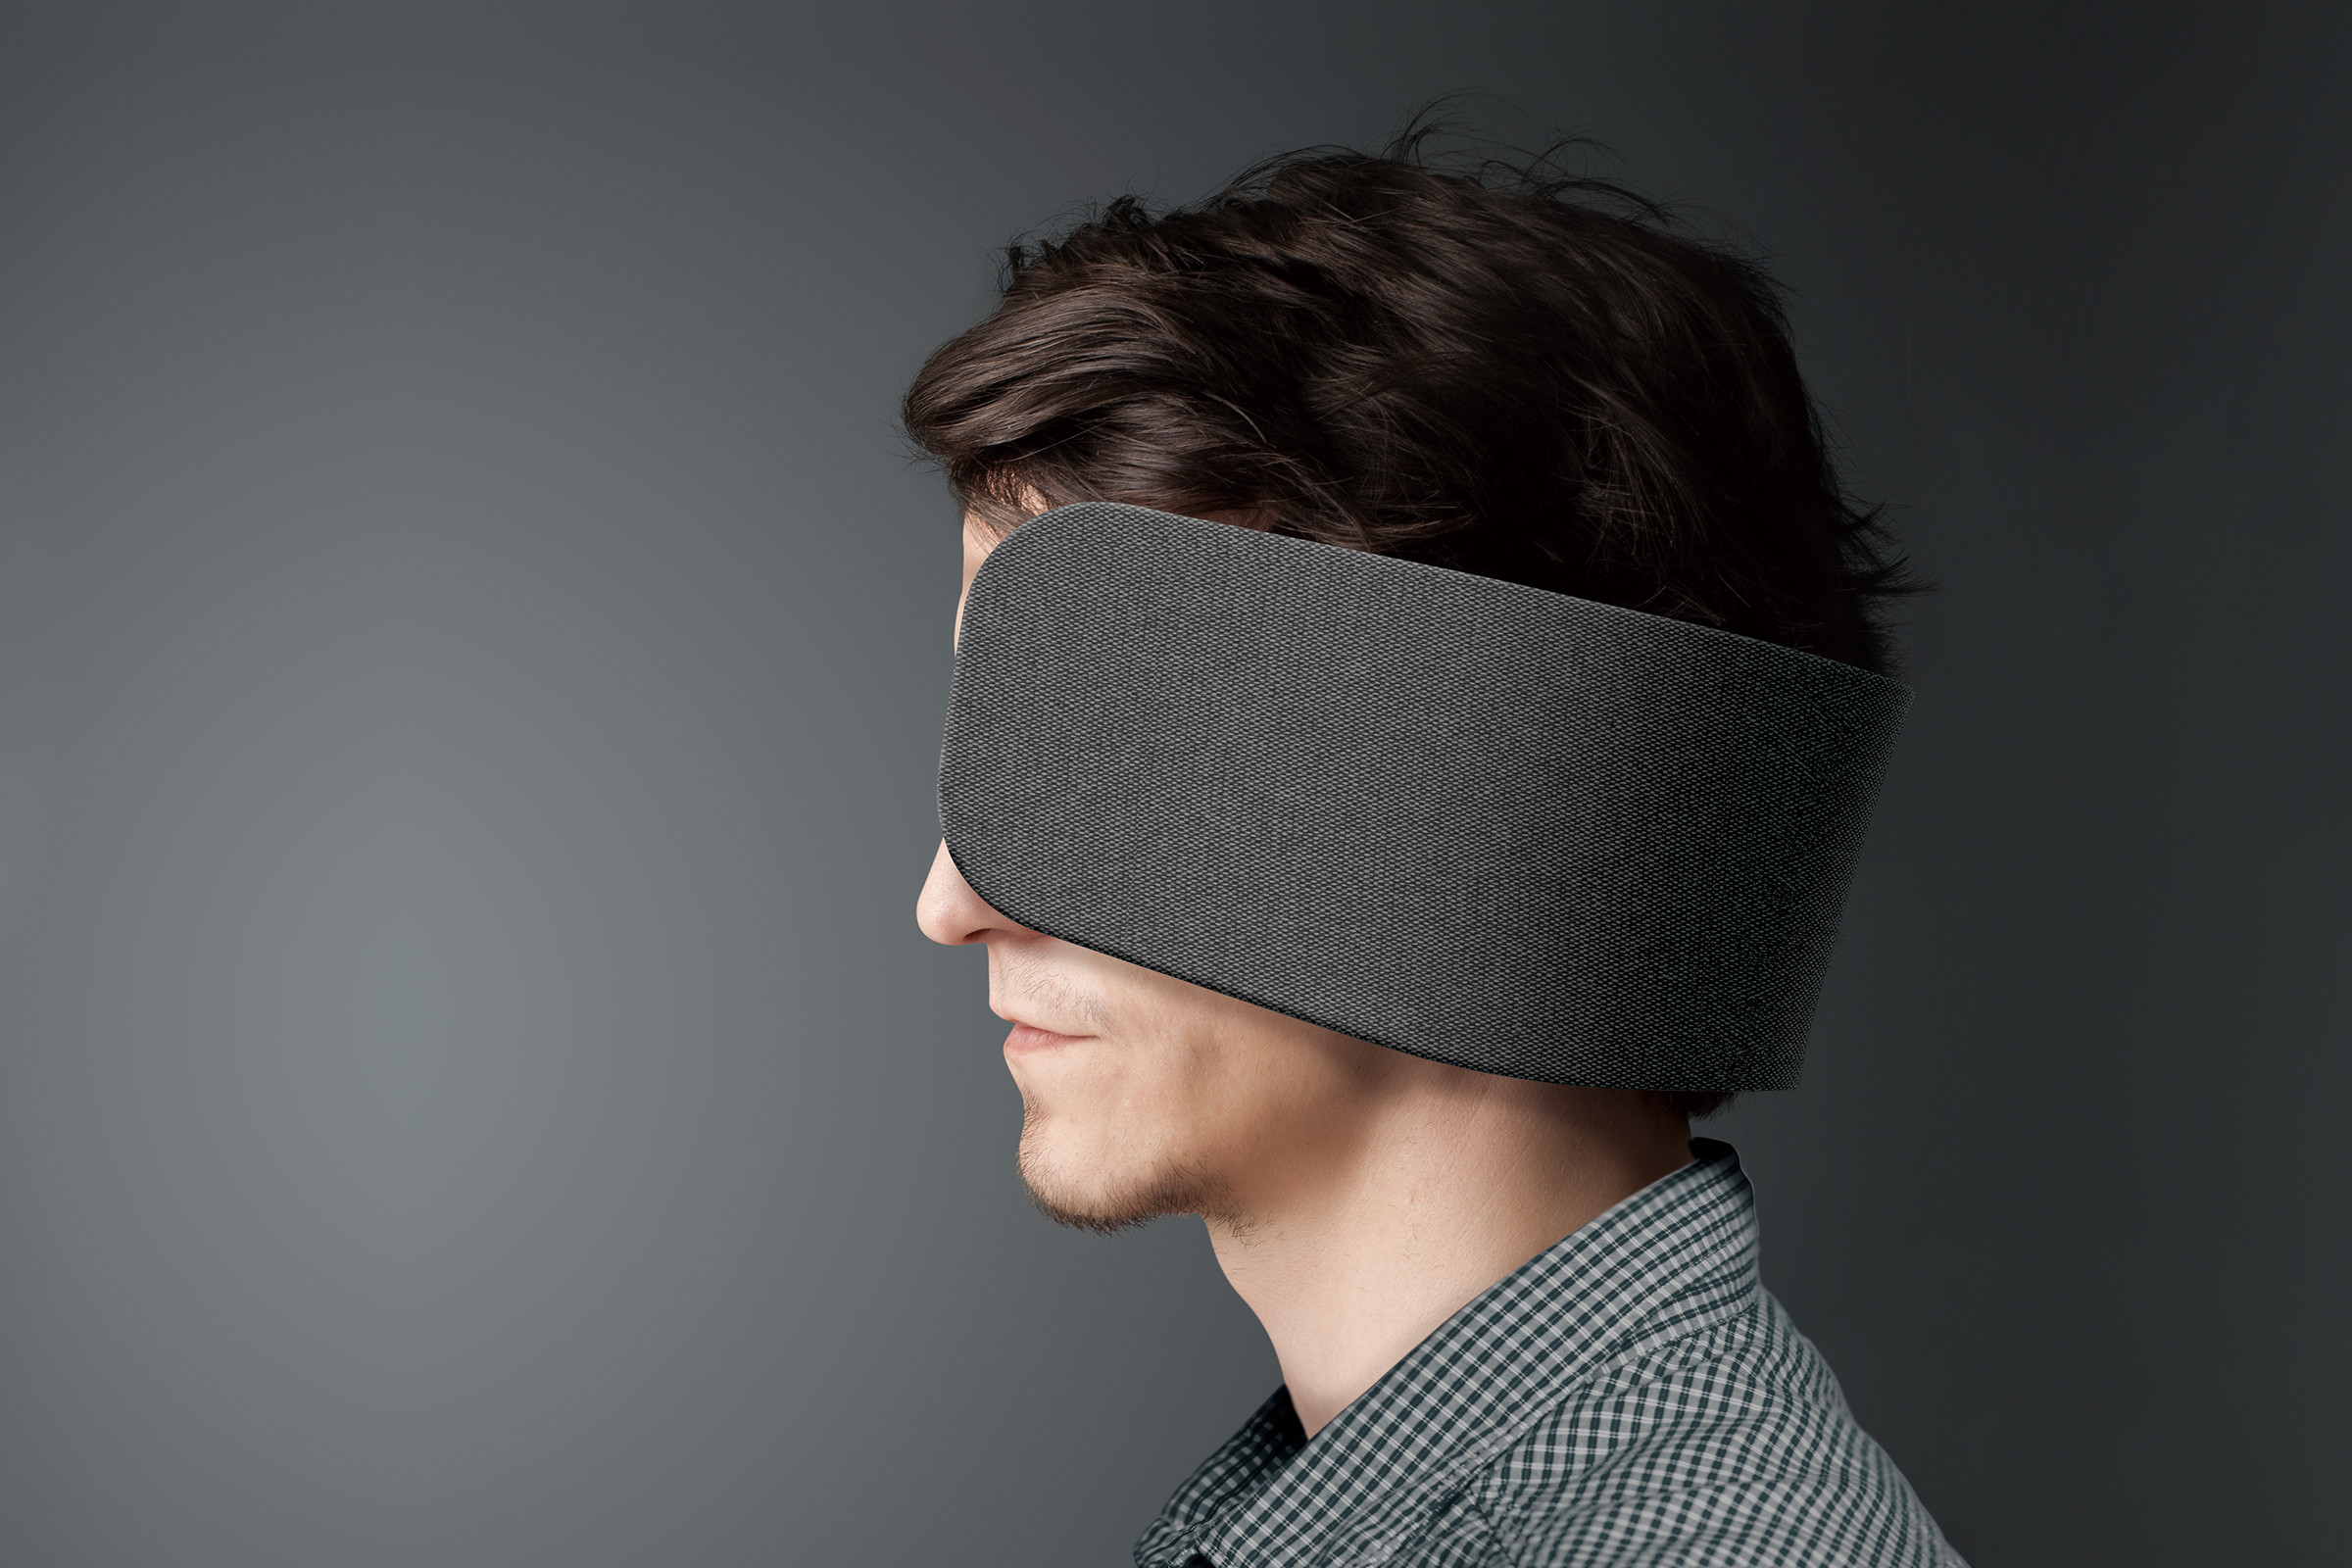 Panasonic Wear Space: Human Blinders for Concentration